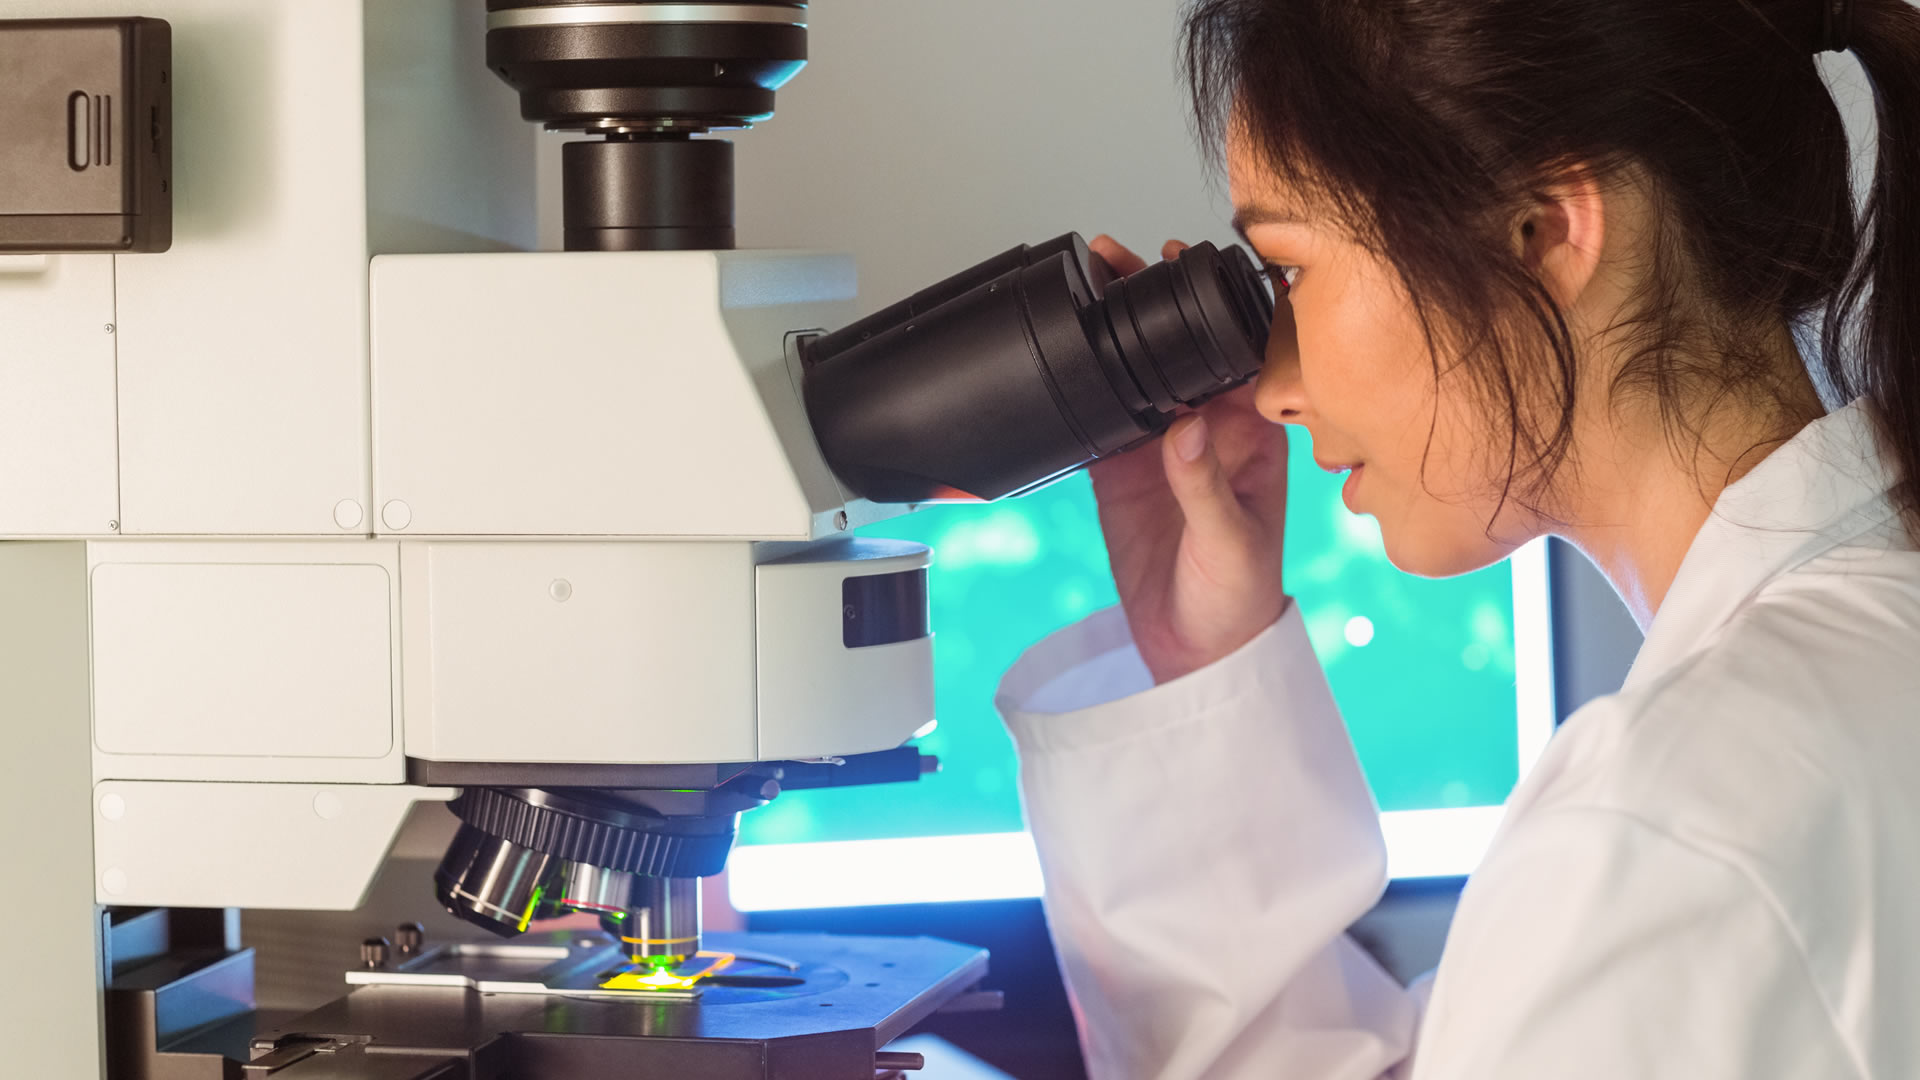 A female student practices using a power electron microscope